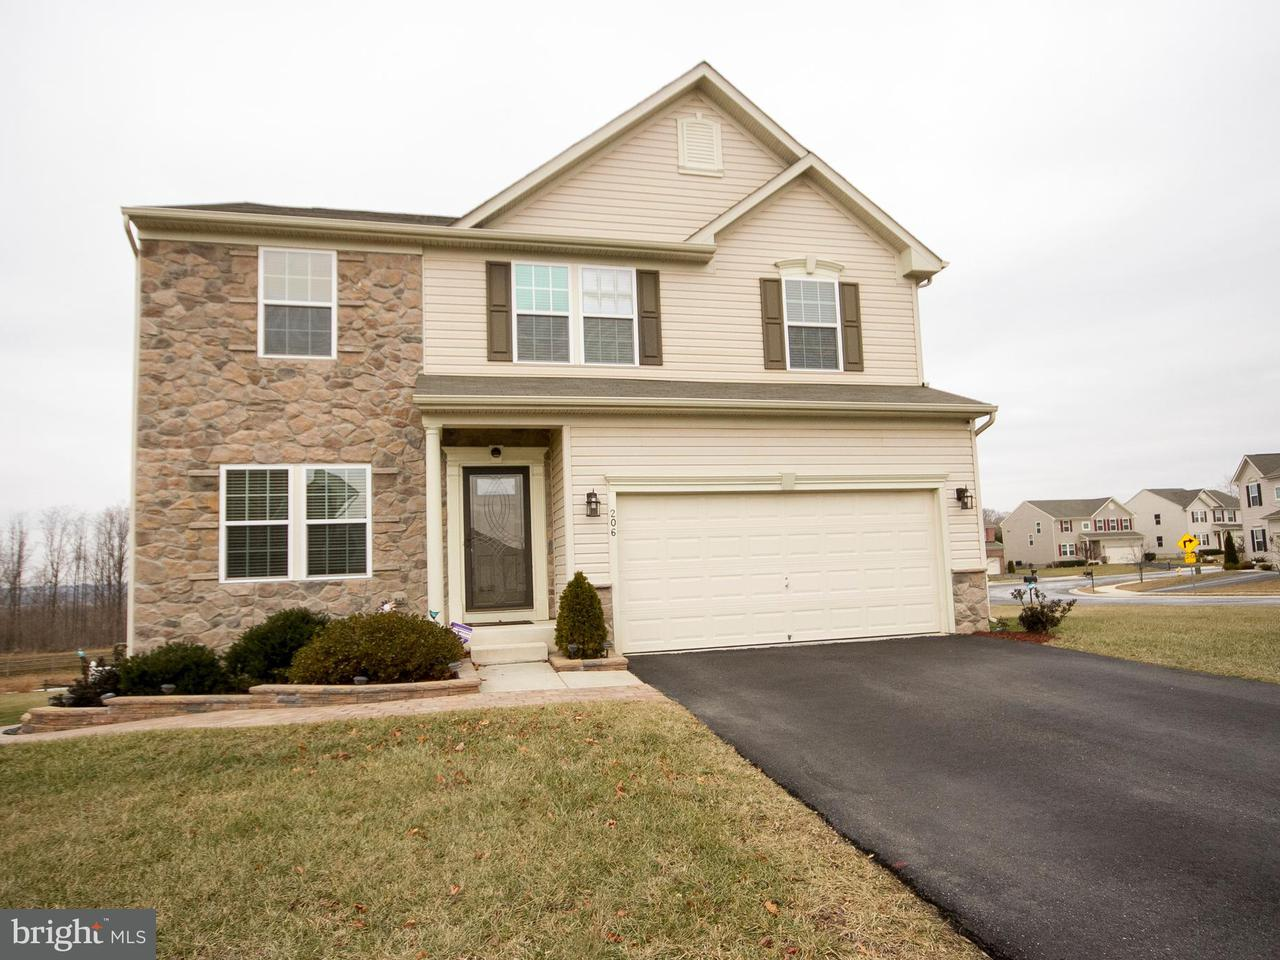 Single Family Home for Sale at 206 CHIMNEY OAK Drive 206 CHIMNEY OAK Drive Joppa, Maryland 21085 United States